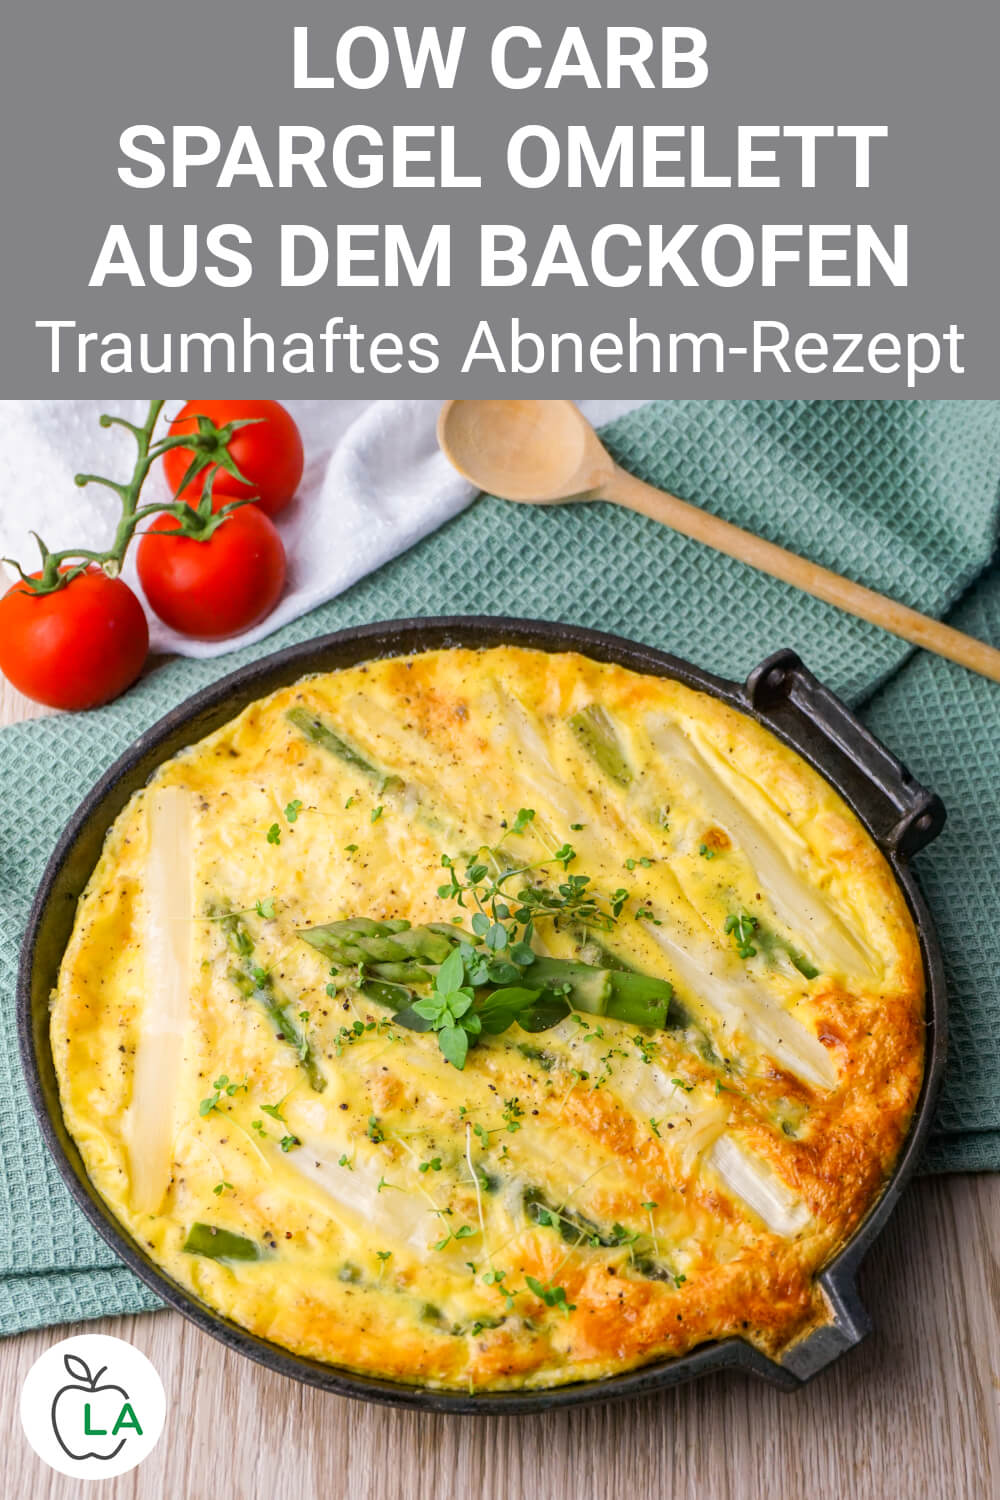 Low Carb Spargel Omelett